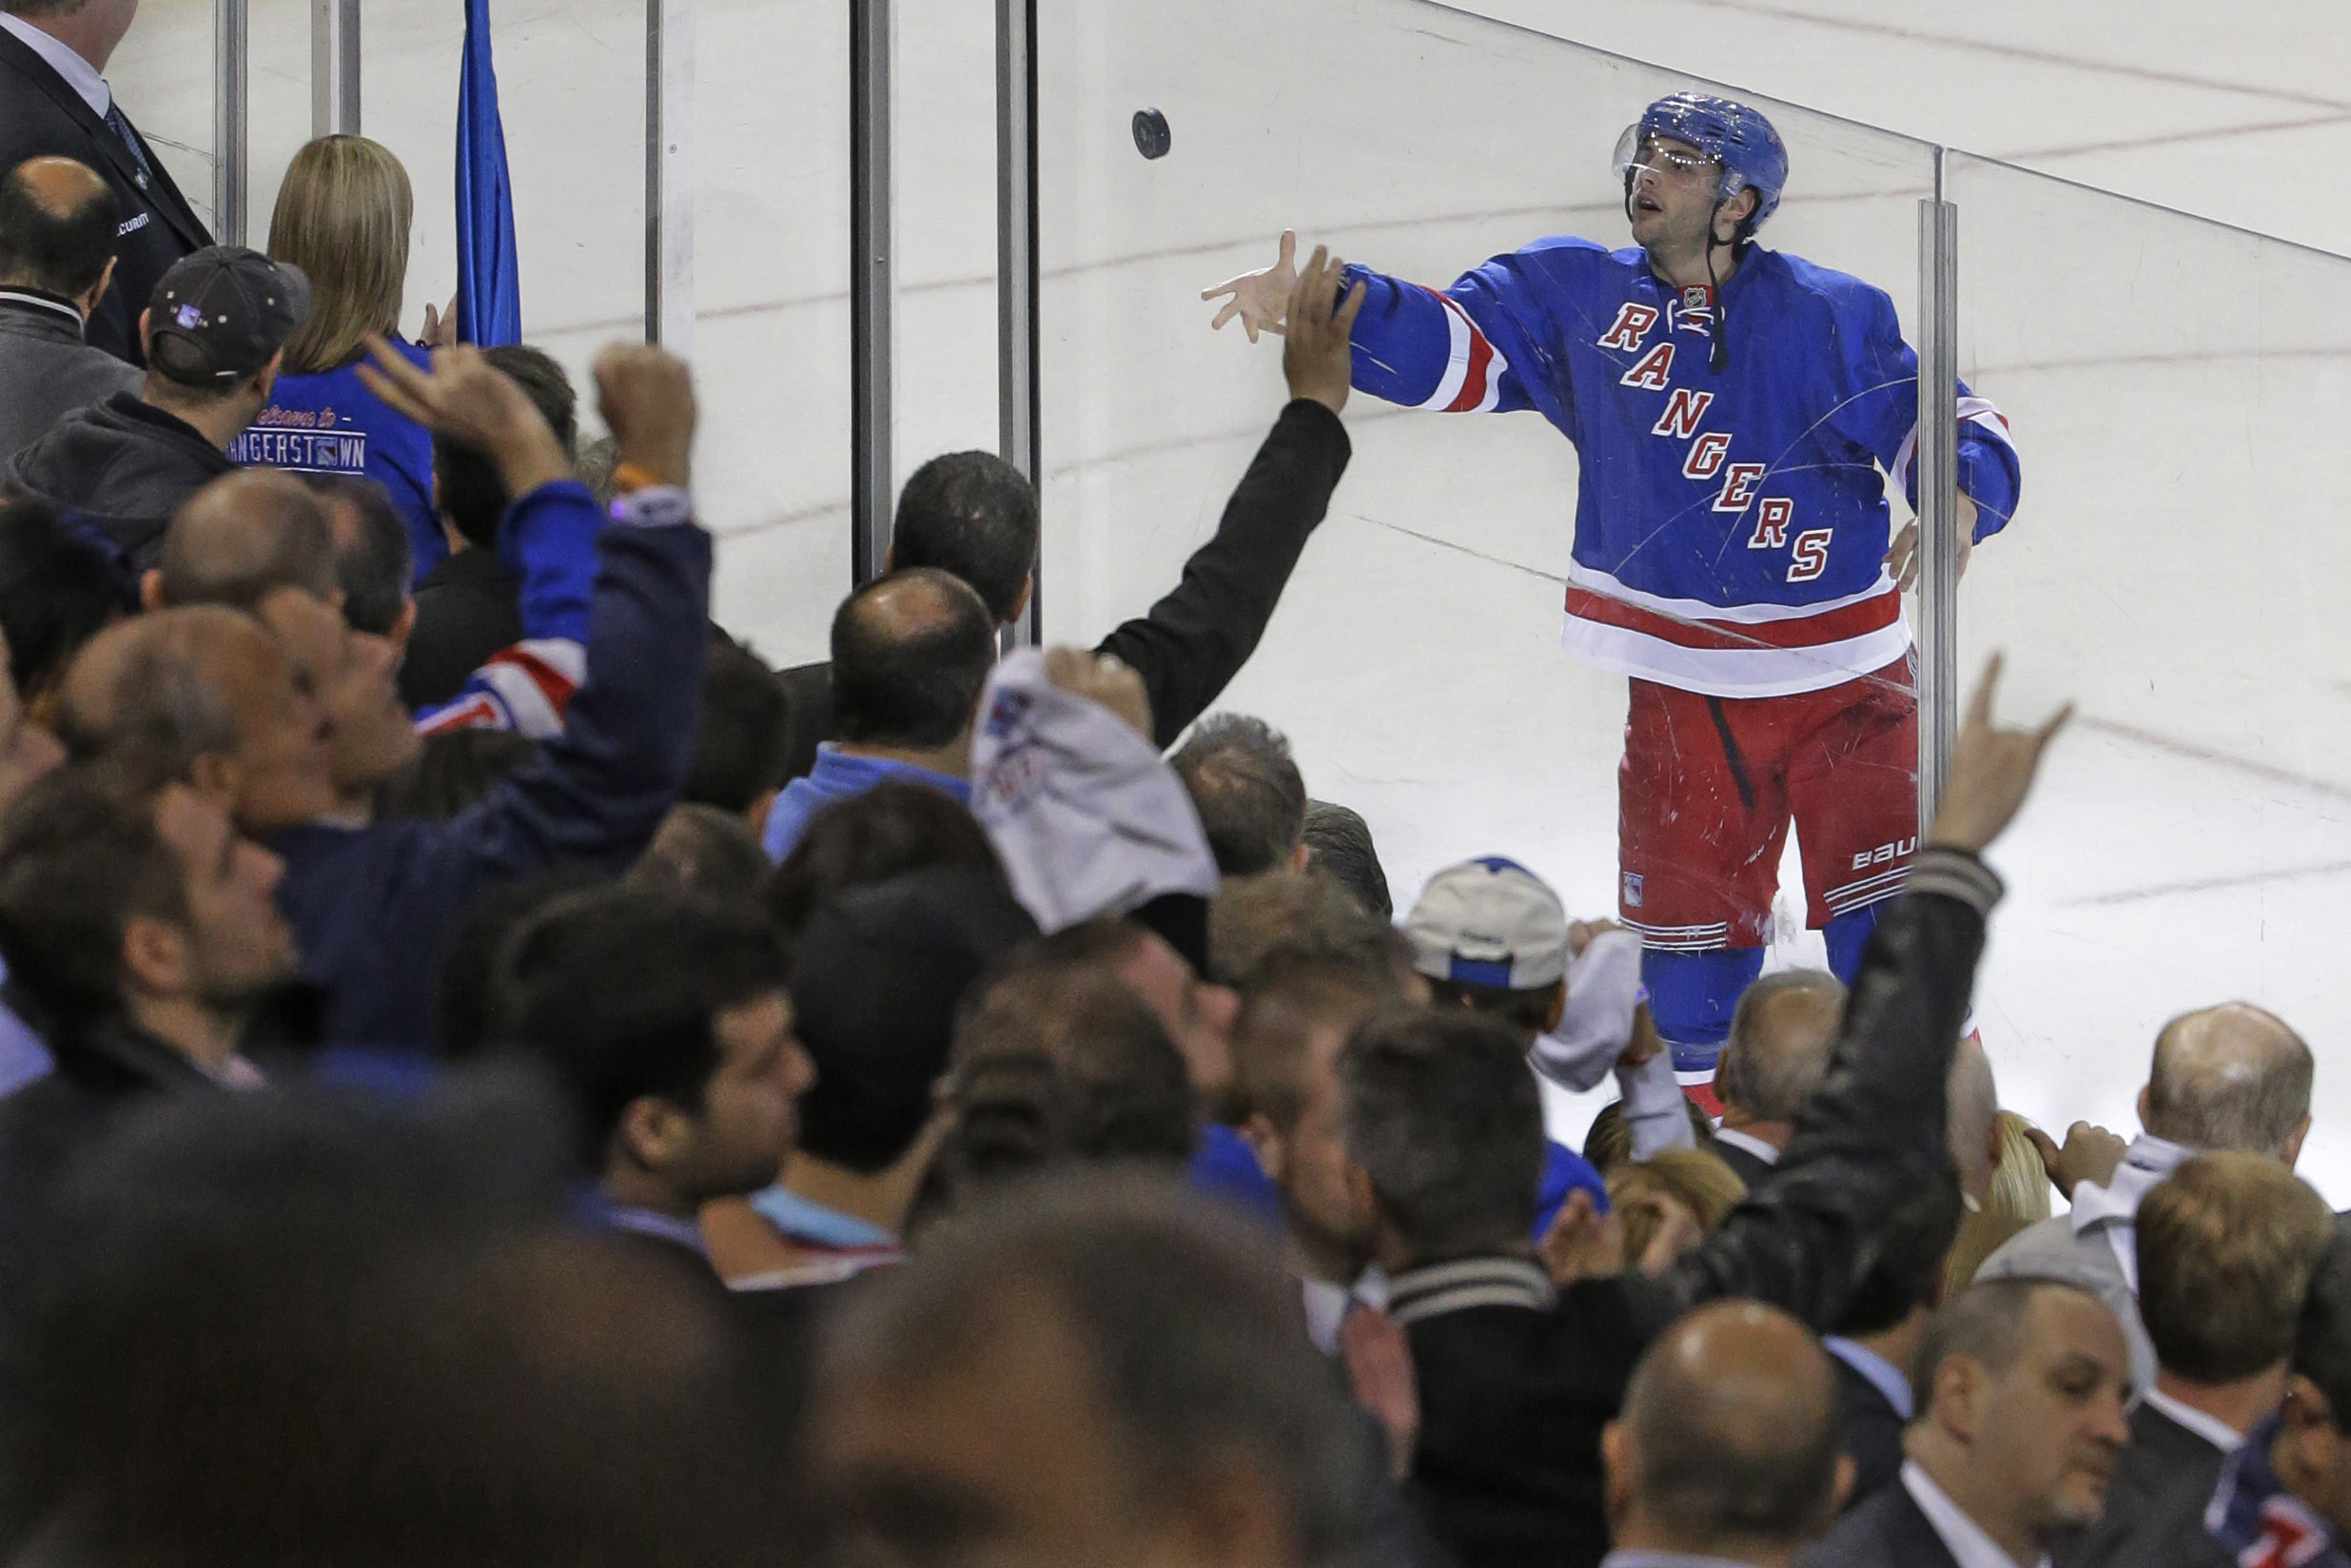 New York Rangers center Derick Brassard tosses the puck to fans after being named the game's most valuable player at the end of Game 1 in the first round of the NHL hockey Stanley Cup playoffs against against the Pittsburgh Penguins, Thursday, April 16, 2